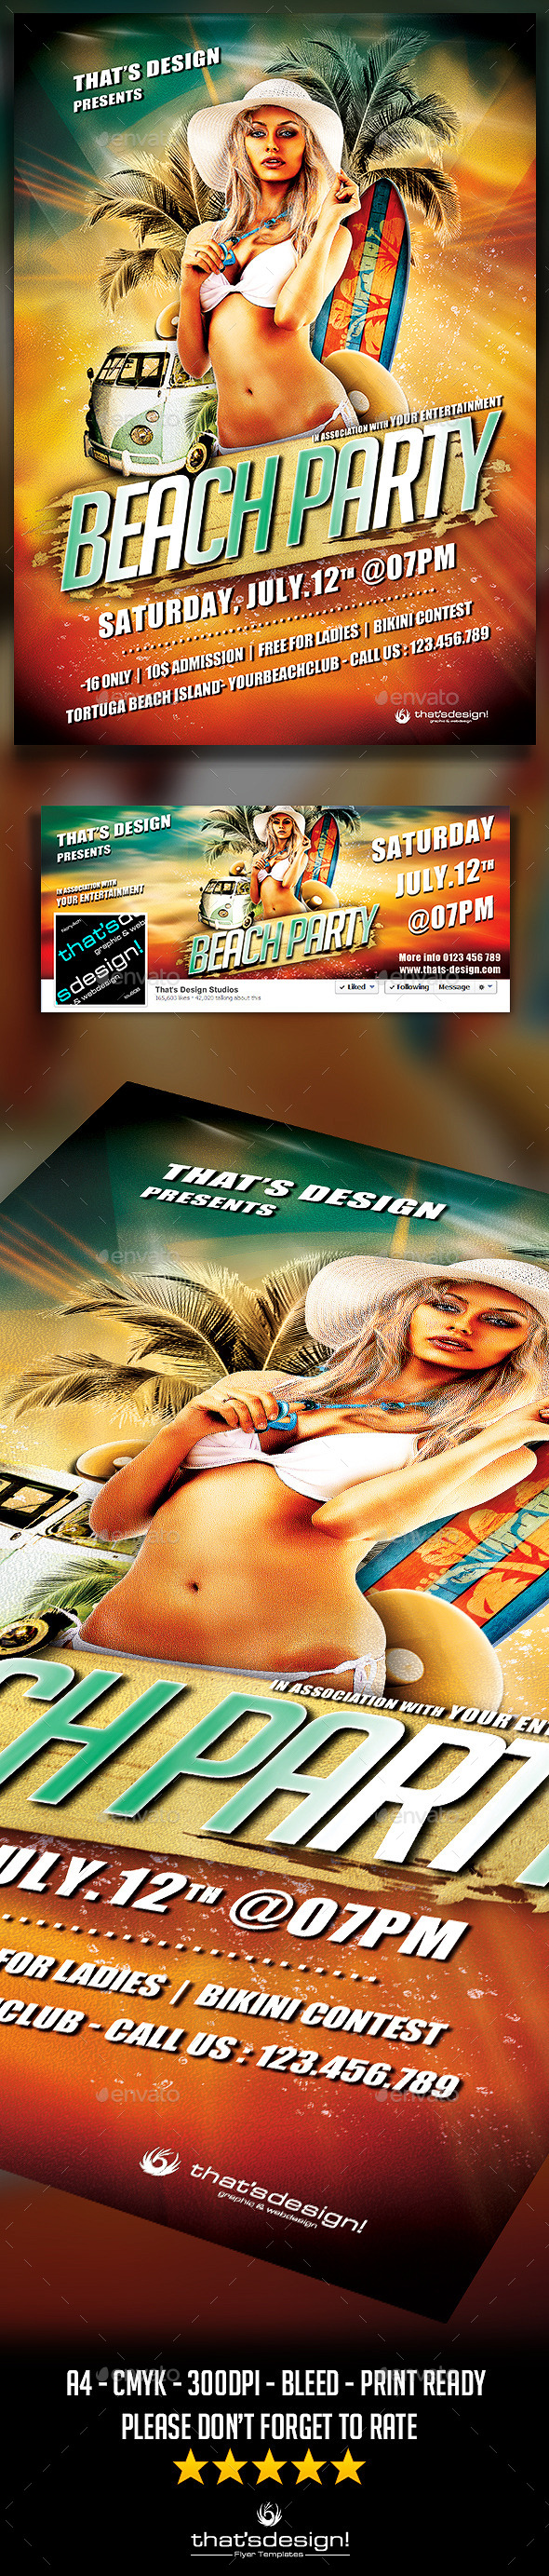 Beach Party Flyer Template V1 - Clubs & Parties Events